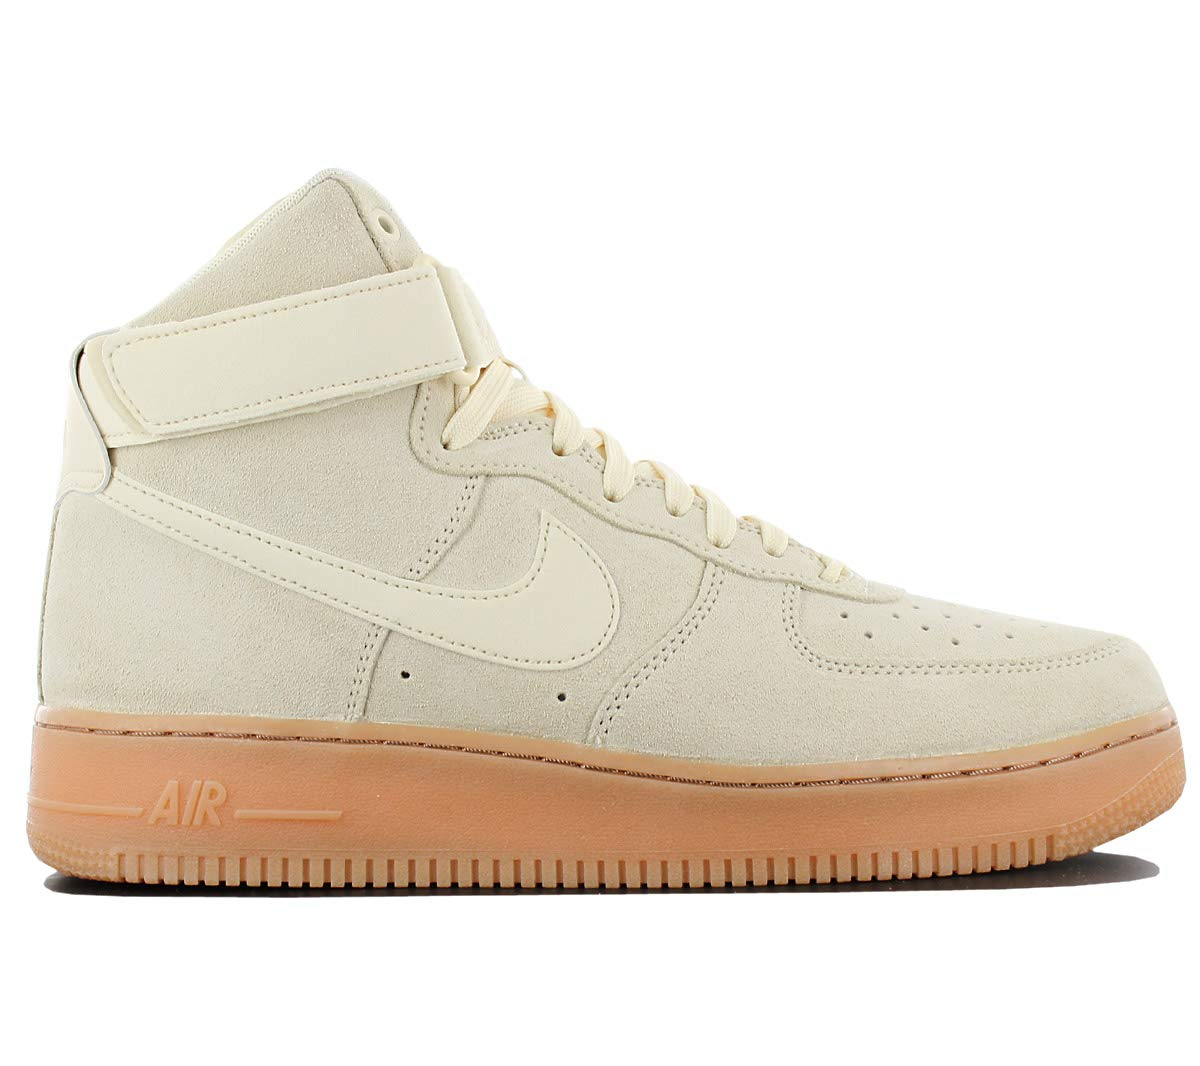 low priced a76ea c1682 Galleon - Nike Air Force 1 High 07 LV8 Suede Mens Shoes MuslinGum Medium  Brown Aa1118-100 (10.5 D(M) US)